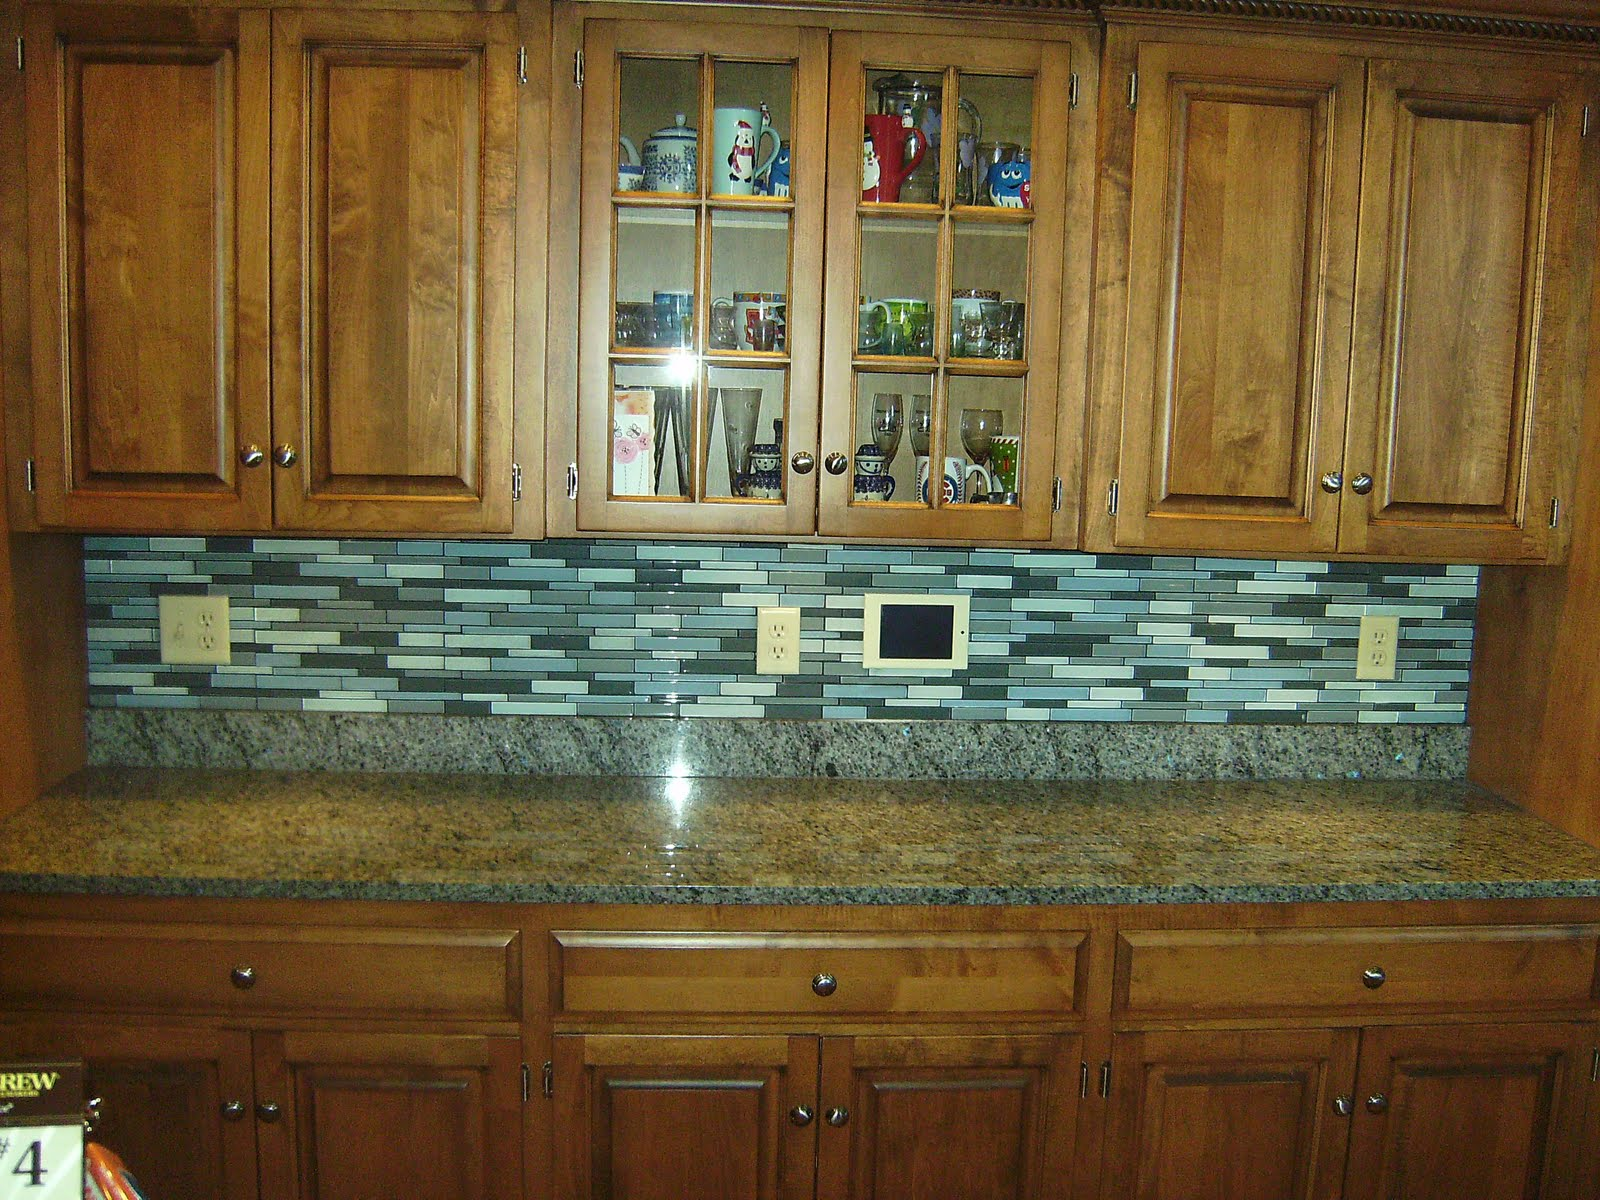 Http Knapptileandflooring Blogspot Com 2010 07 Glass Tile Backsplash Html